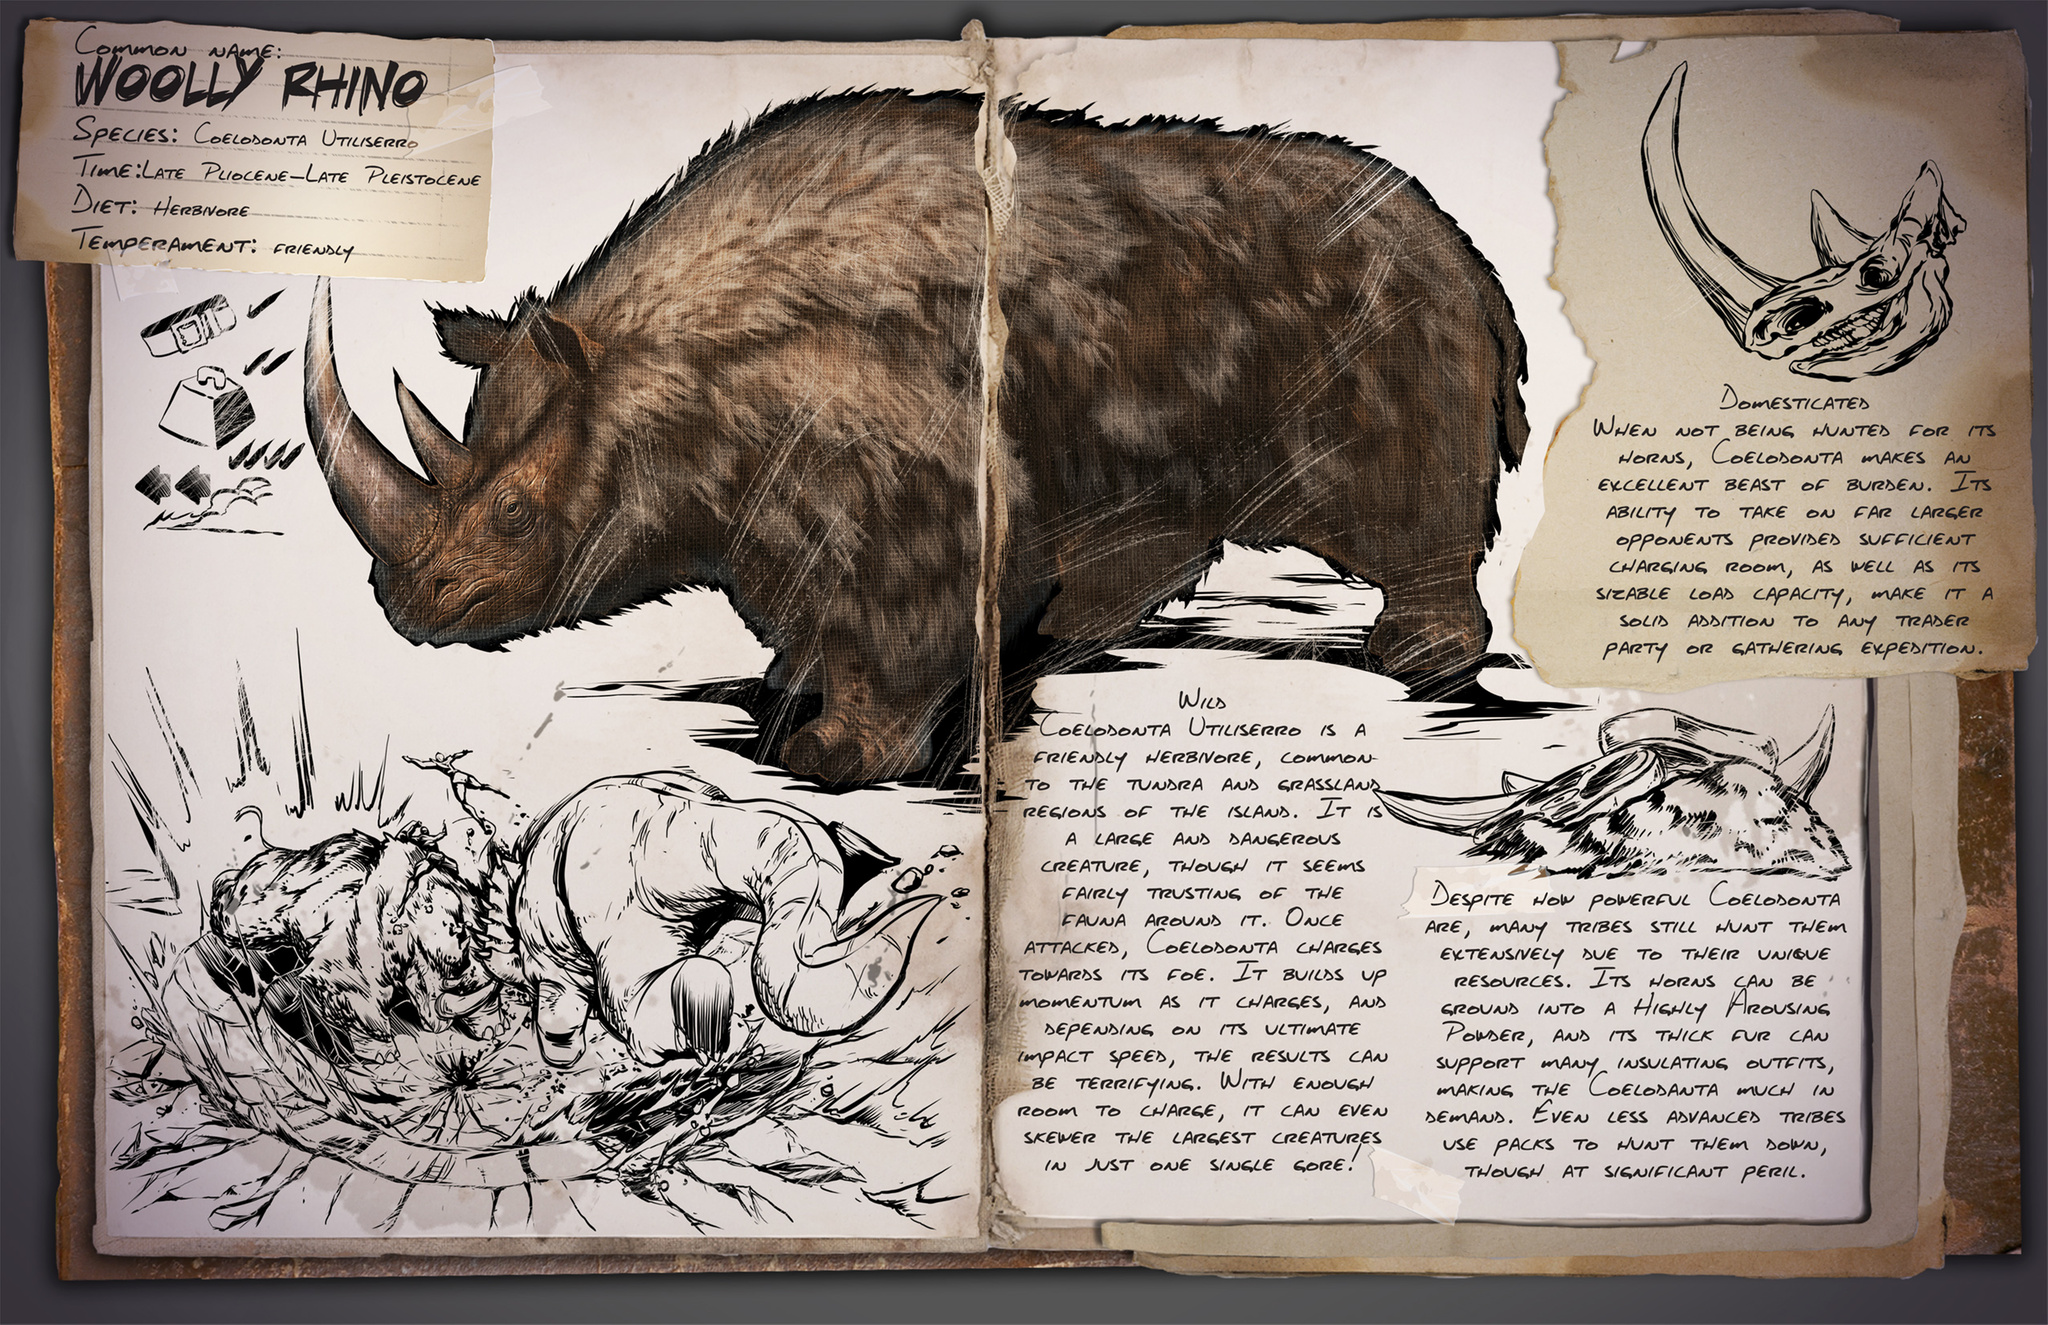 Deutsches Dino Dossier: Woolly Rhino – Wolliges Rhino